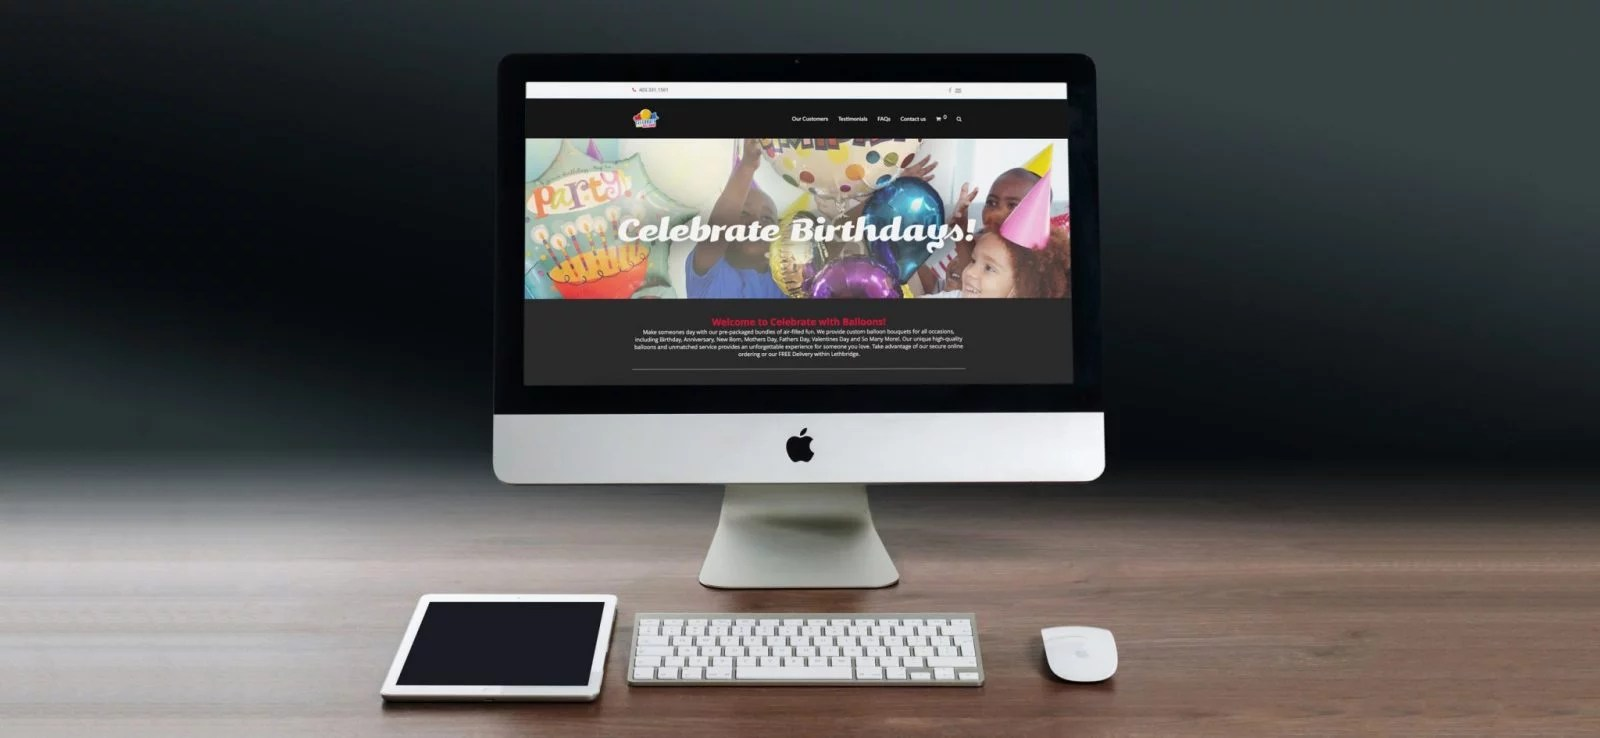 Celebrate With Balloons - Web Banner Design - Lethbridge Alberta